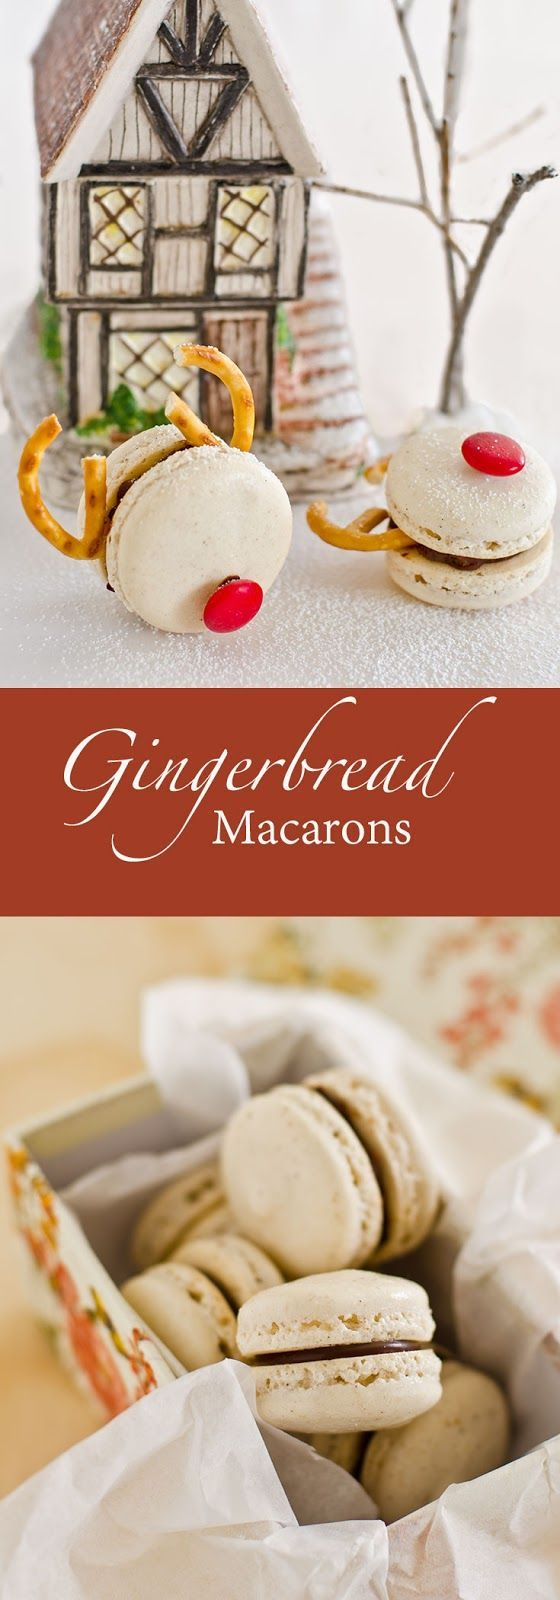 Gingerbread Macarons with Orange Intense Dark Chocolate Ganache recipe. A delightful and an excellent sweet treat for Christmas.